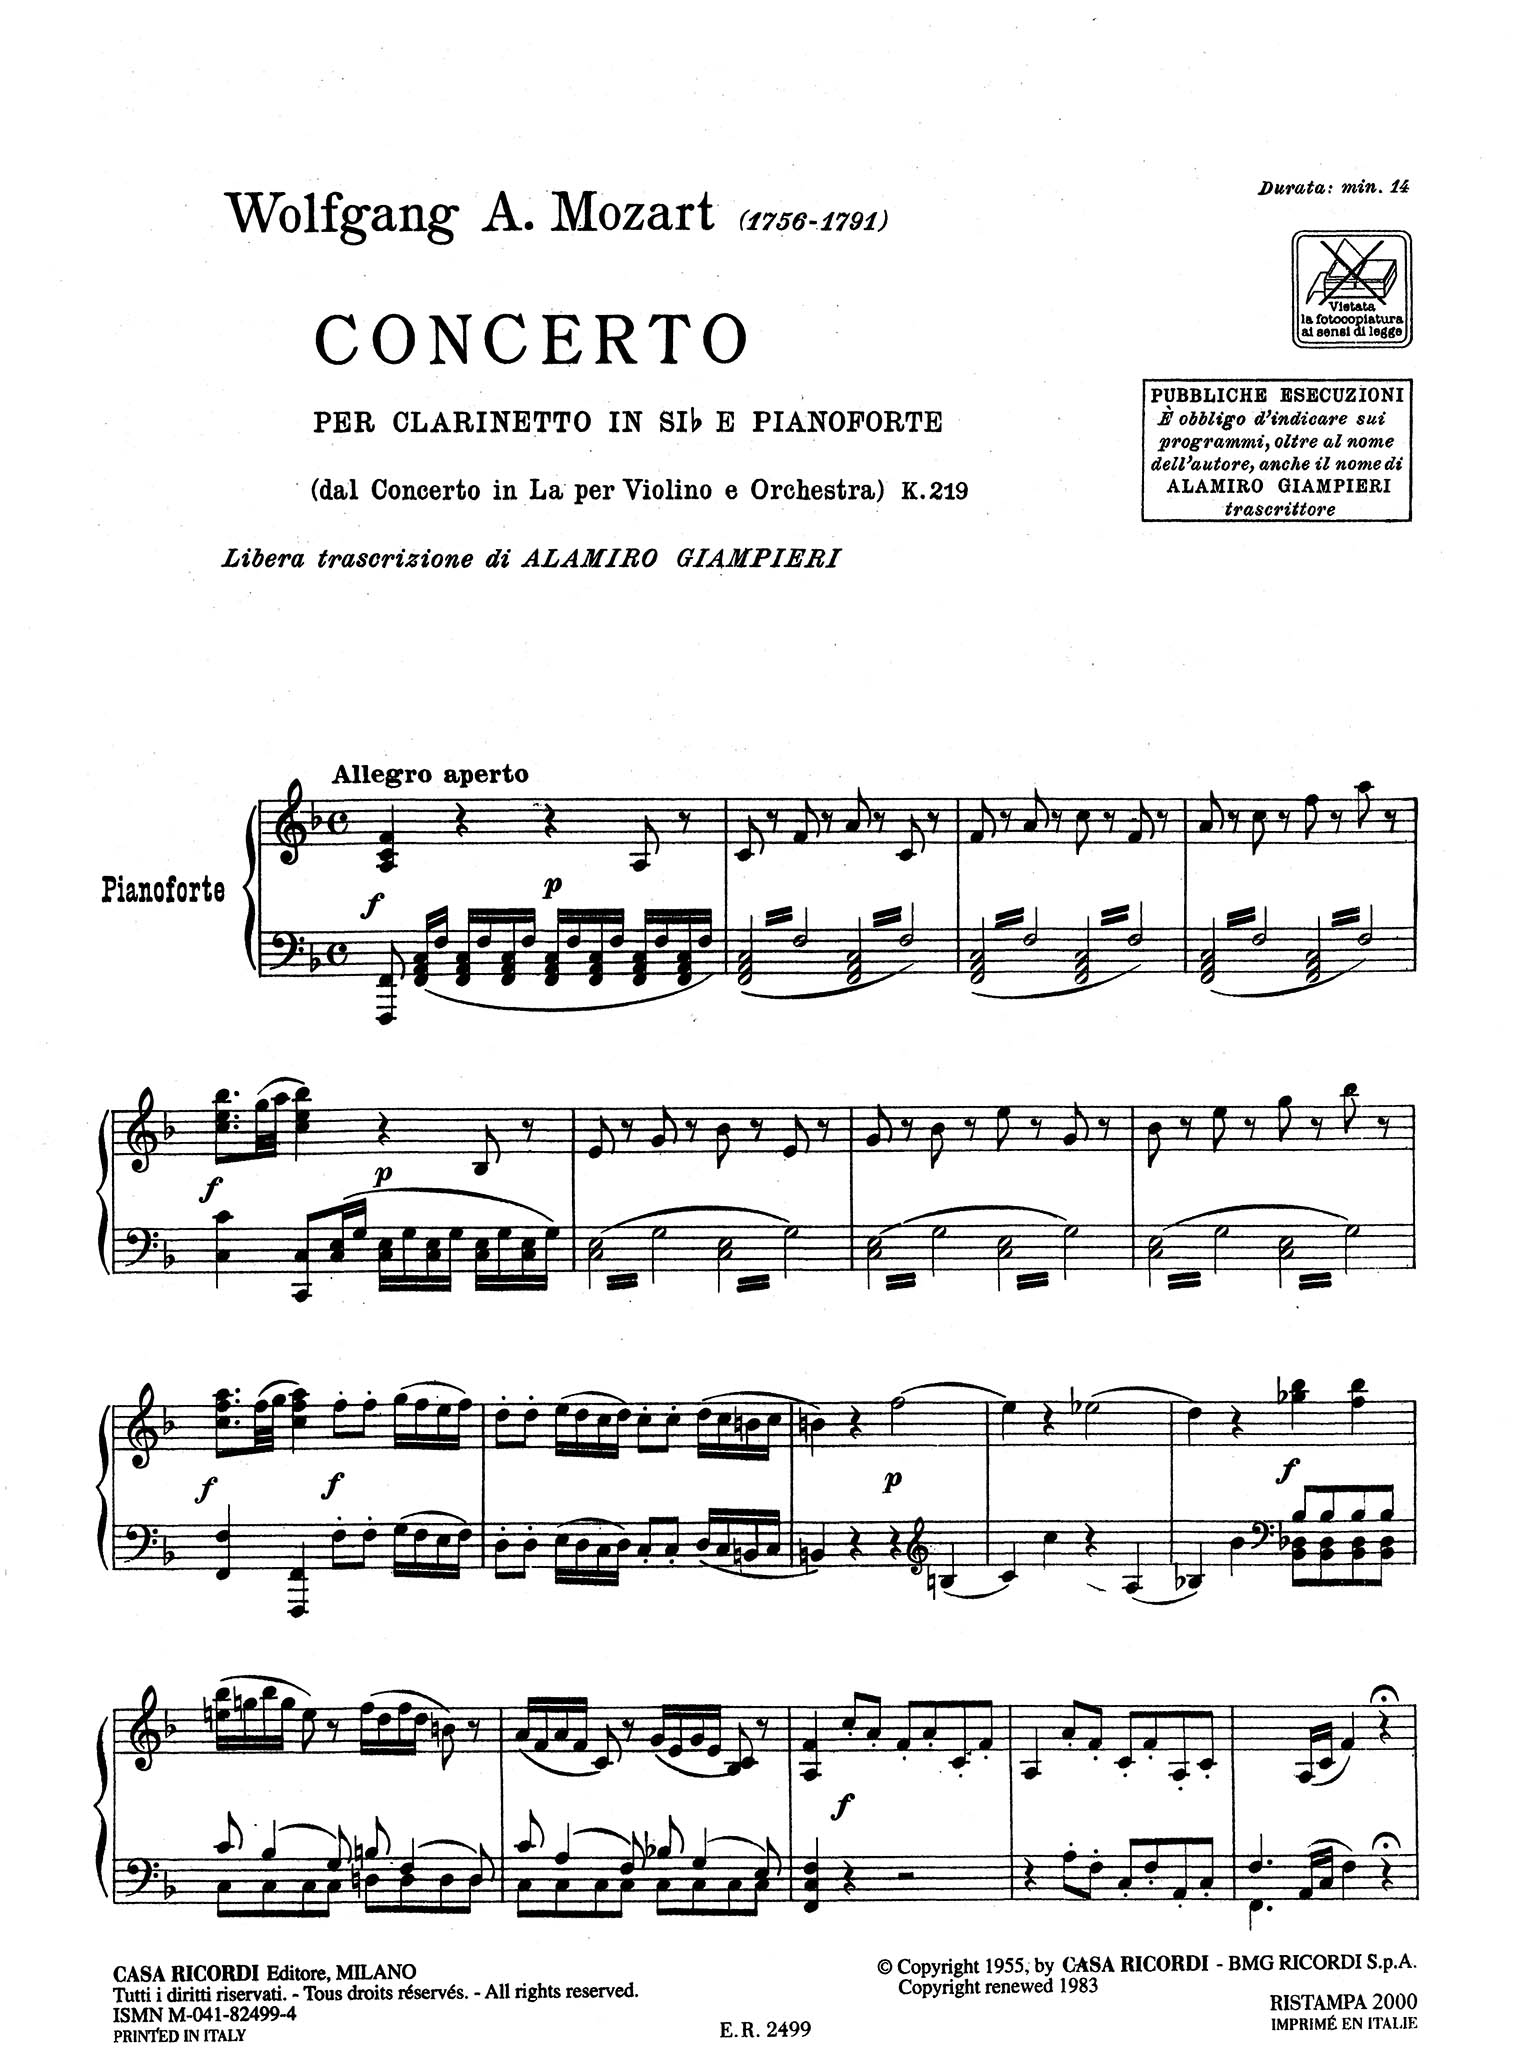 Violin Concerto No. 5, K 219 - Movement 1